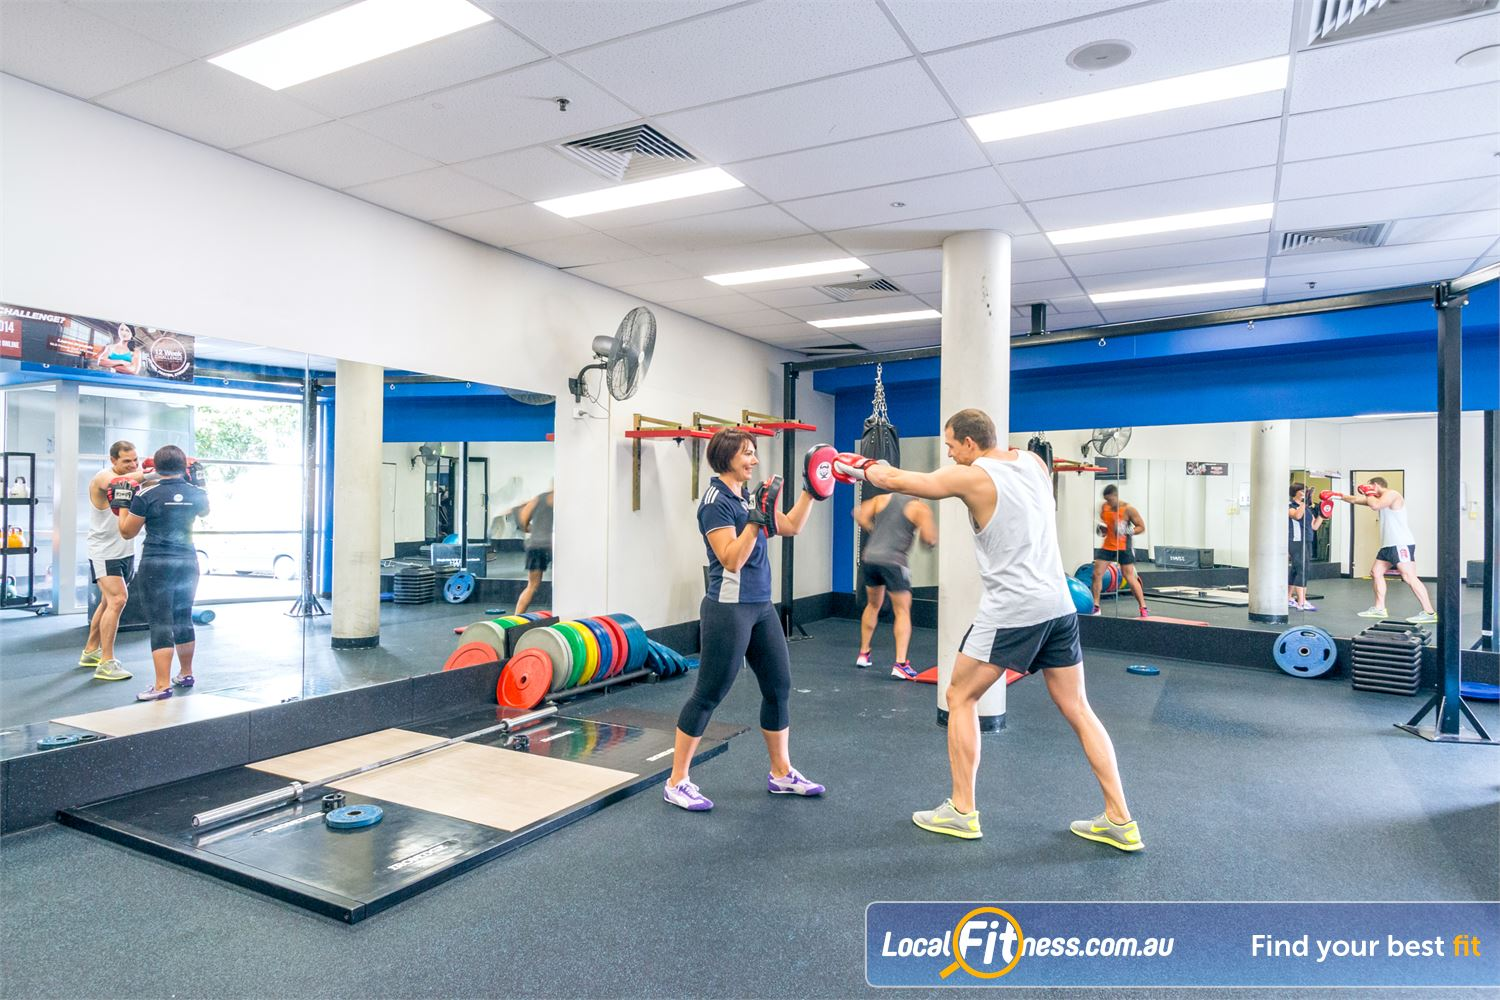 Goodlife Health Clubs Fortitude Valley Enjoy cardio boxing in our dedicated Fortitude Valley boxing studio.